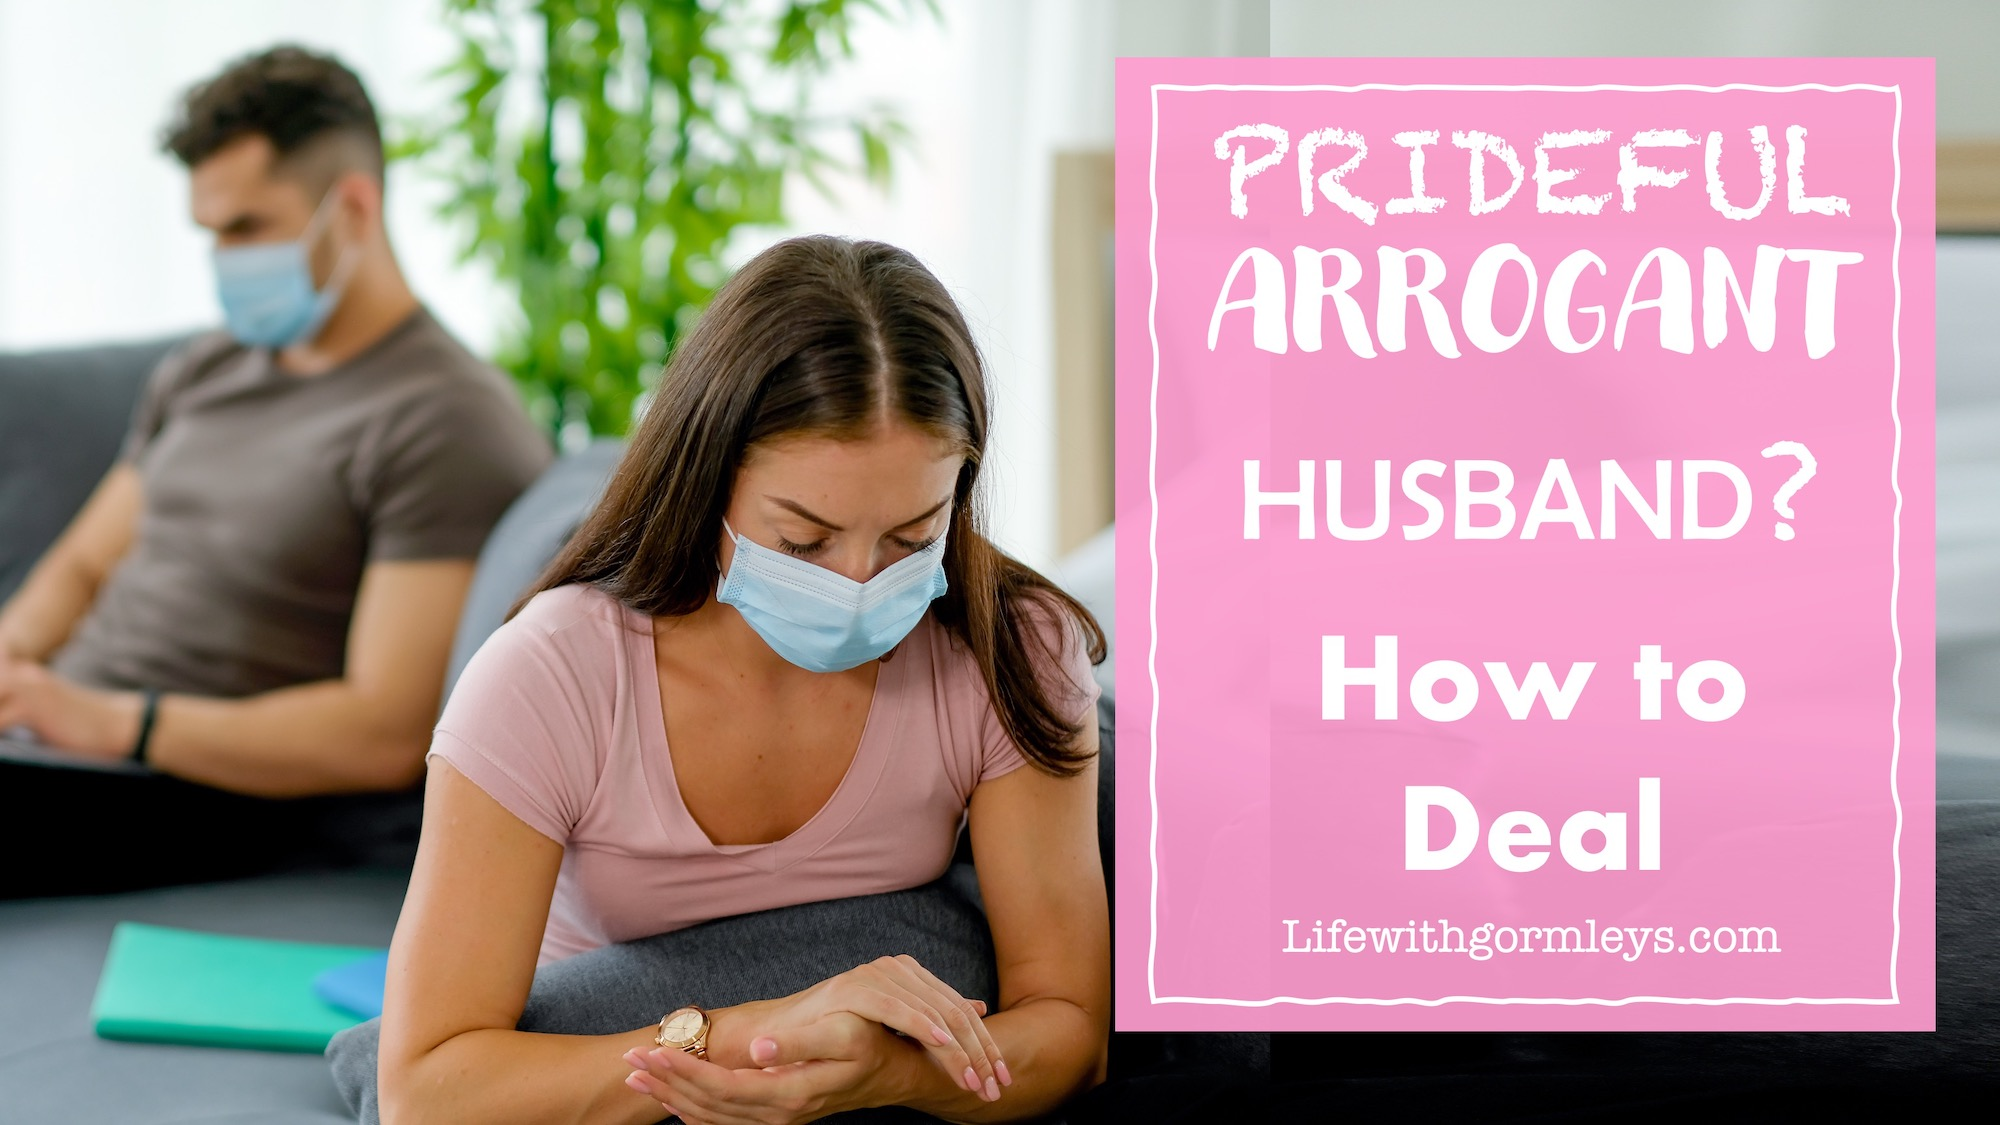 Prideful Arrogant Husband? How to Deal - Life with Gormleys